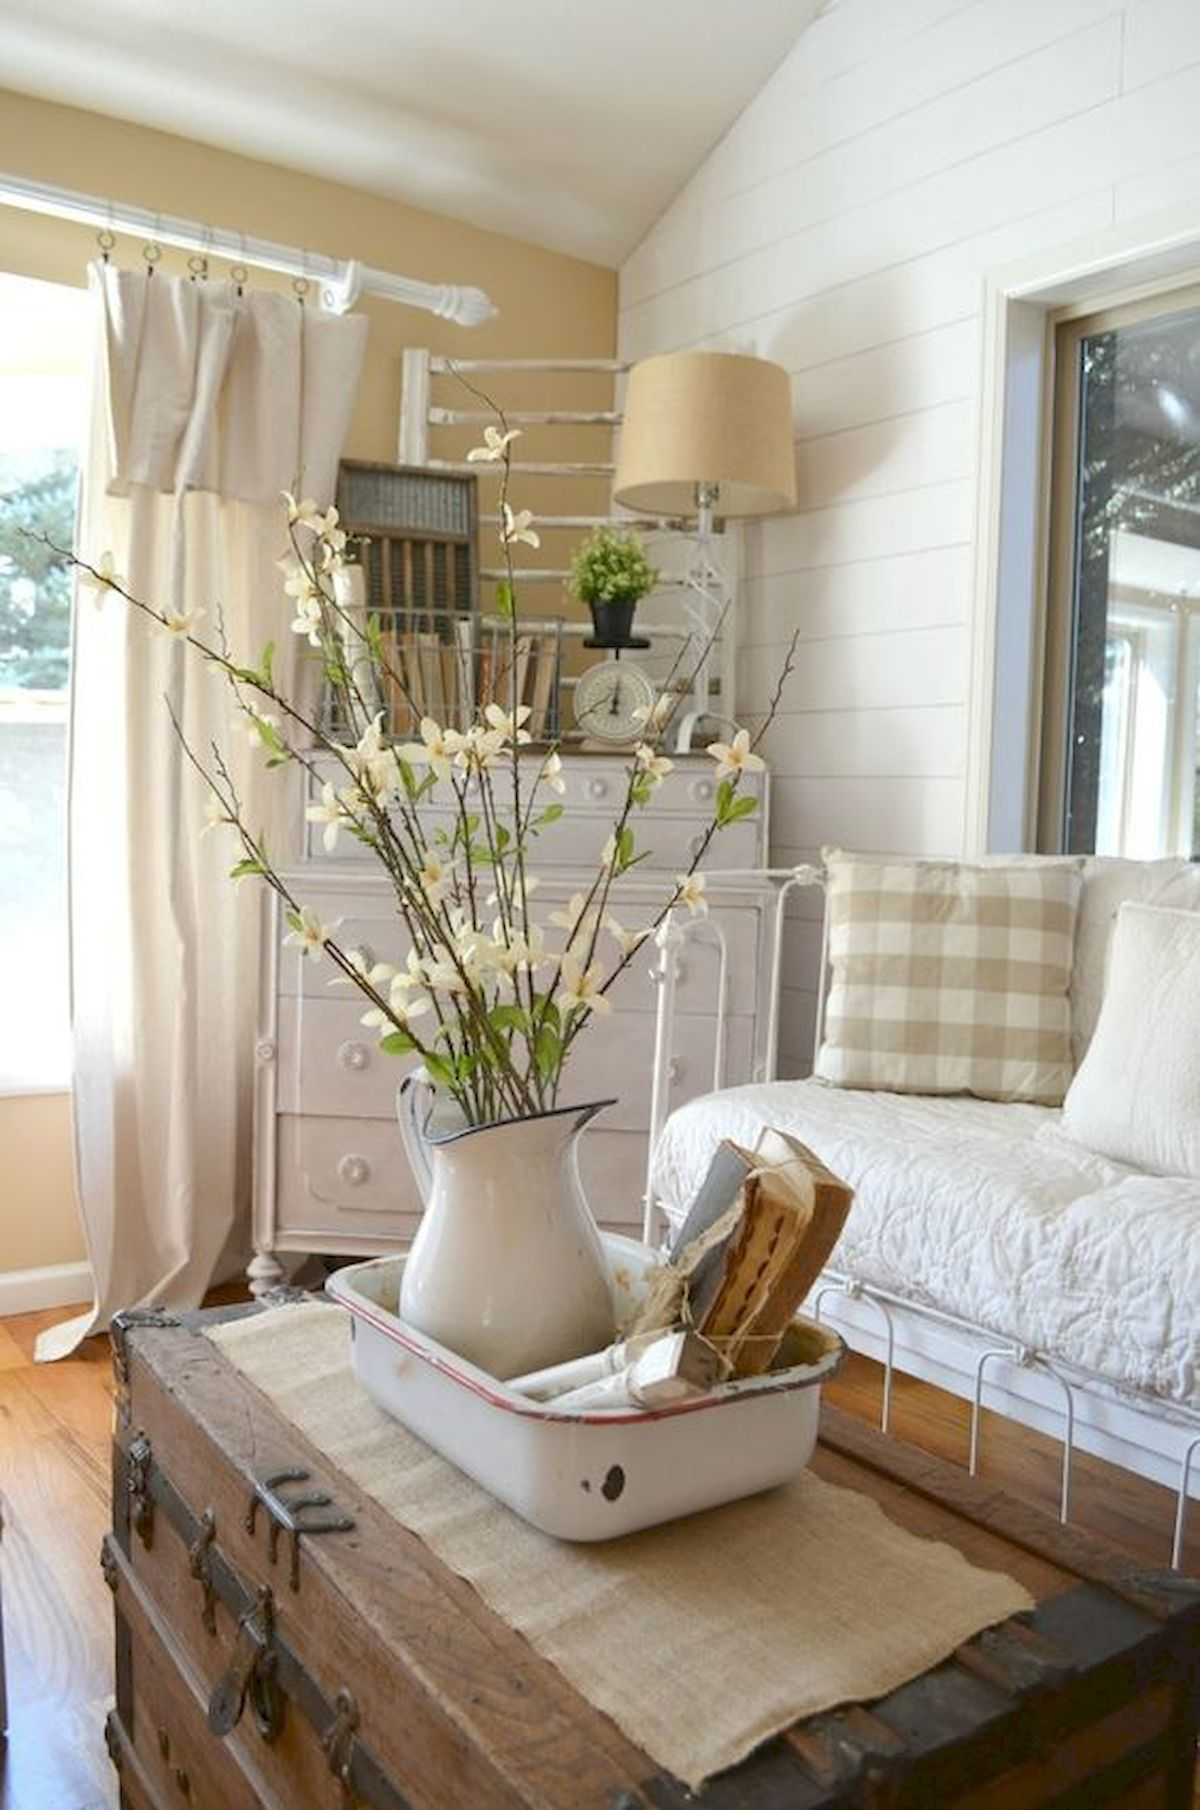 Old Tea Pot as Flower Vase